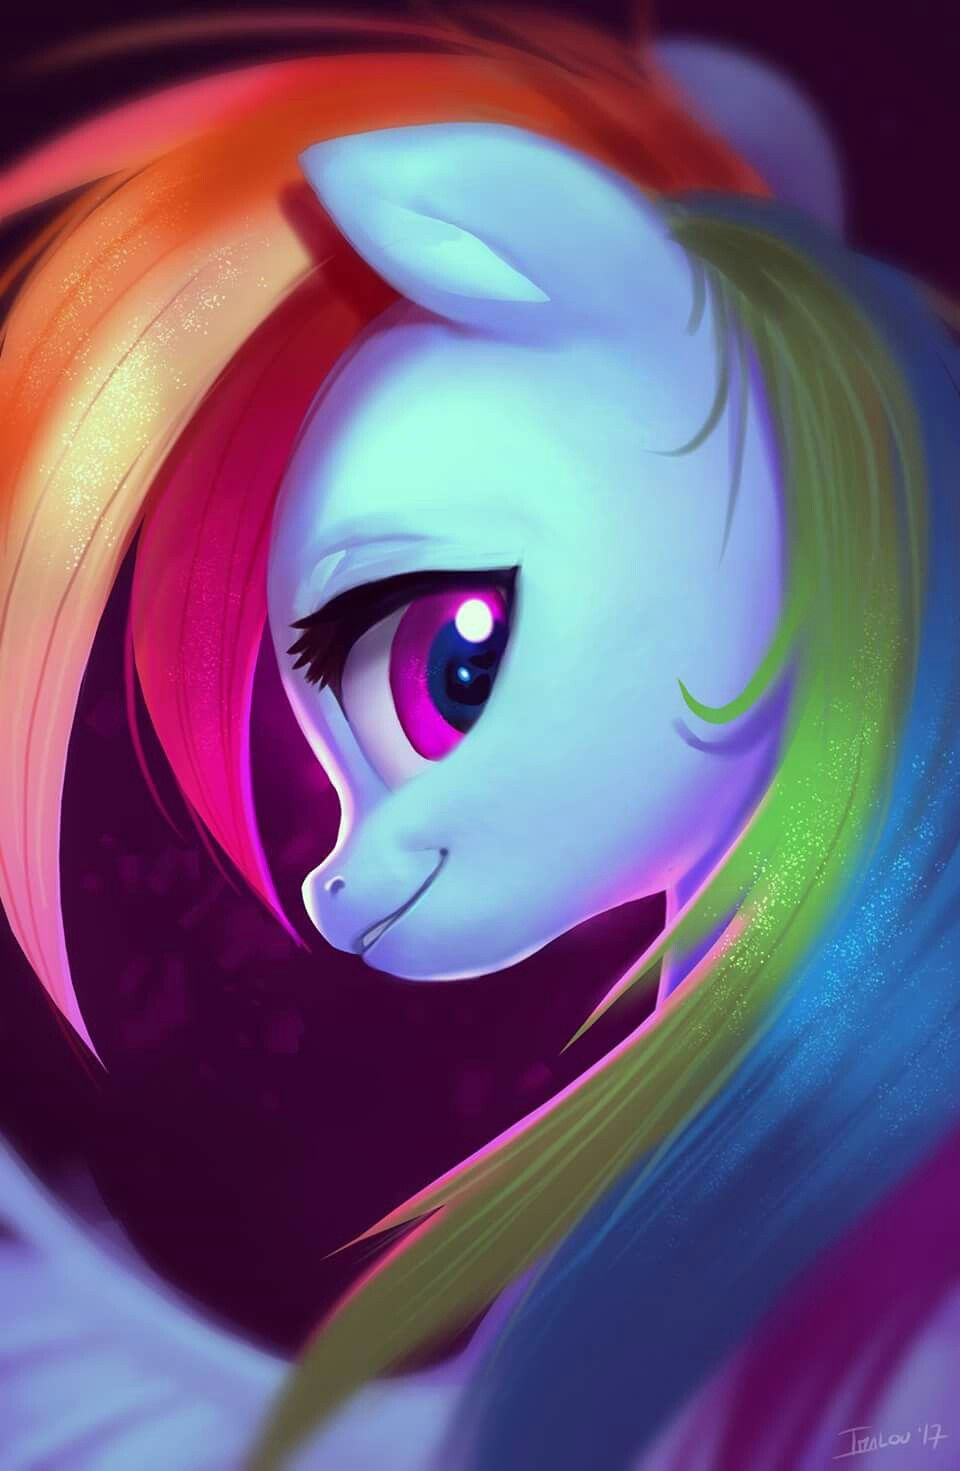 Rainbow Dash My Little Pony Wallpaper Pony My Little Pony Cartoon